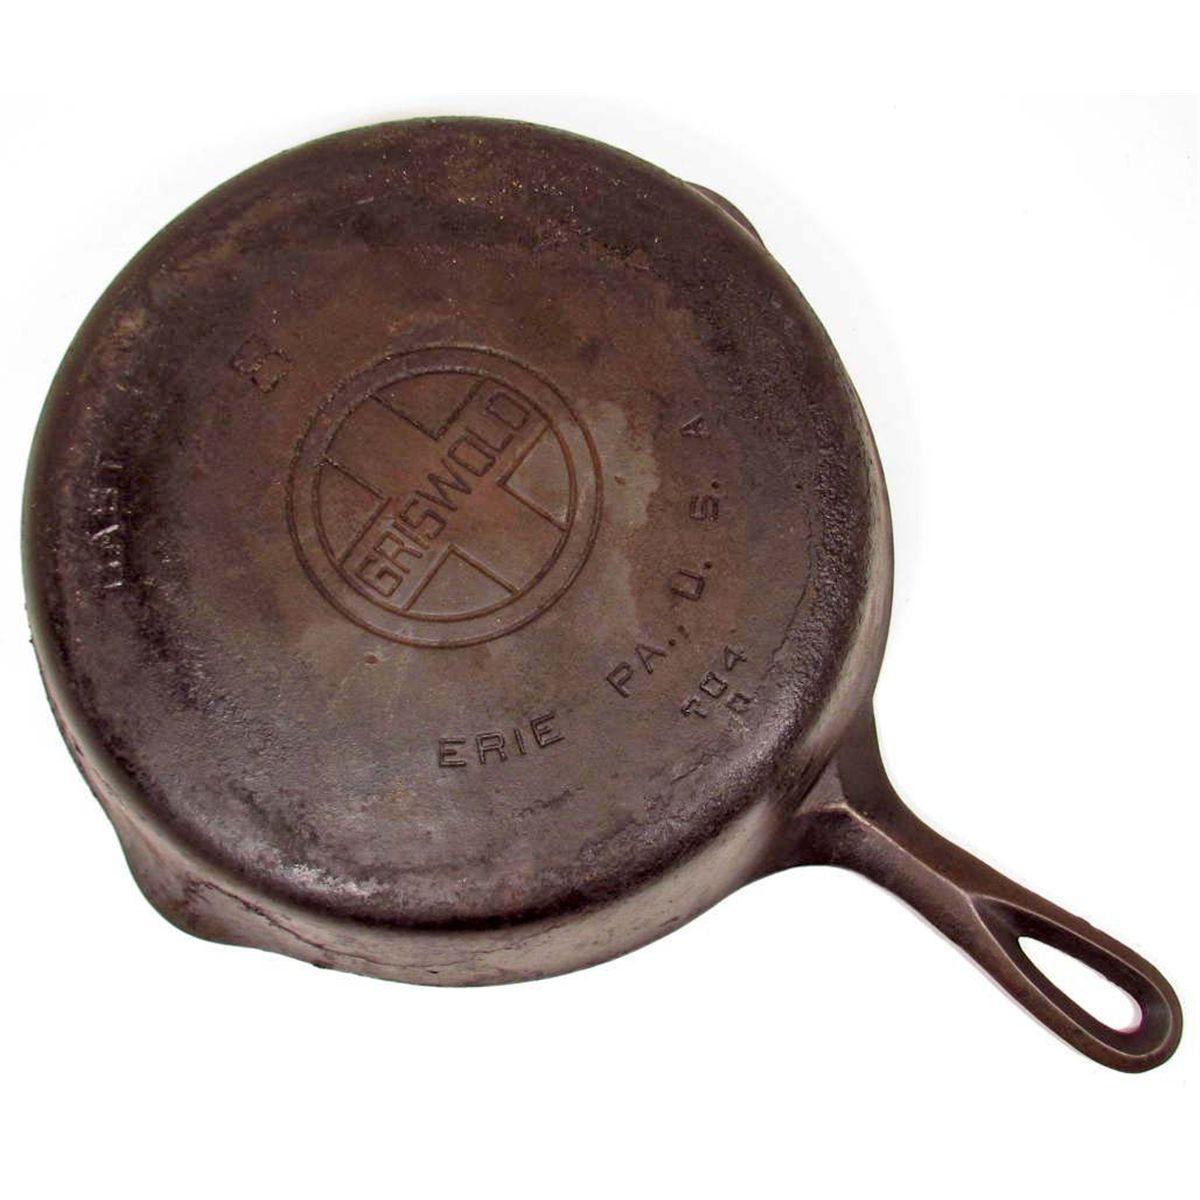 Certified Mail Receipt Excel Antique Griswold No  Cast Iron Frying Pan Paypal Payment Receipt Excel with How To Send A Invoice Excel  Request A Delivery Receipt Pdf